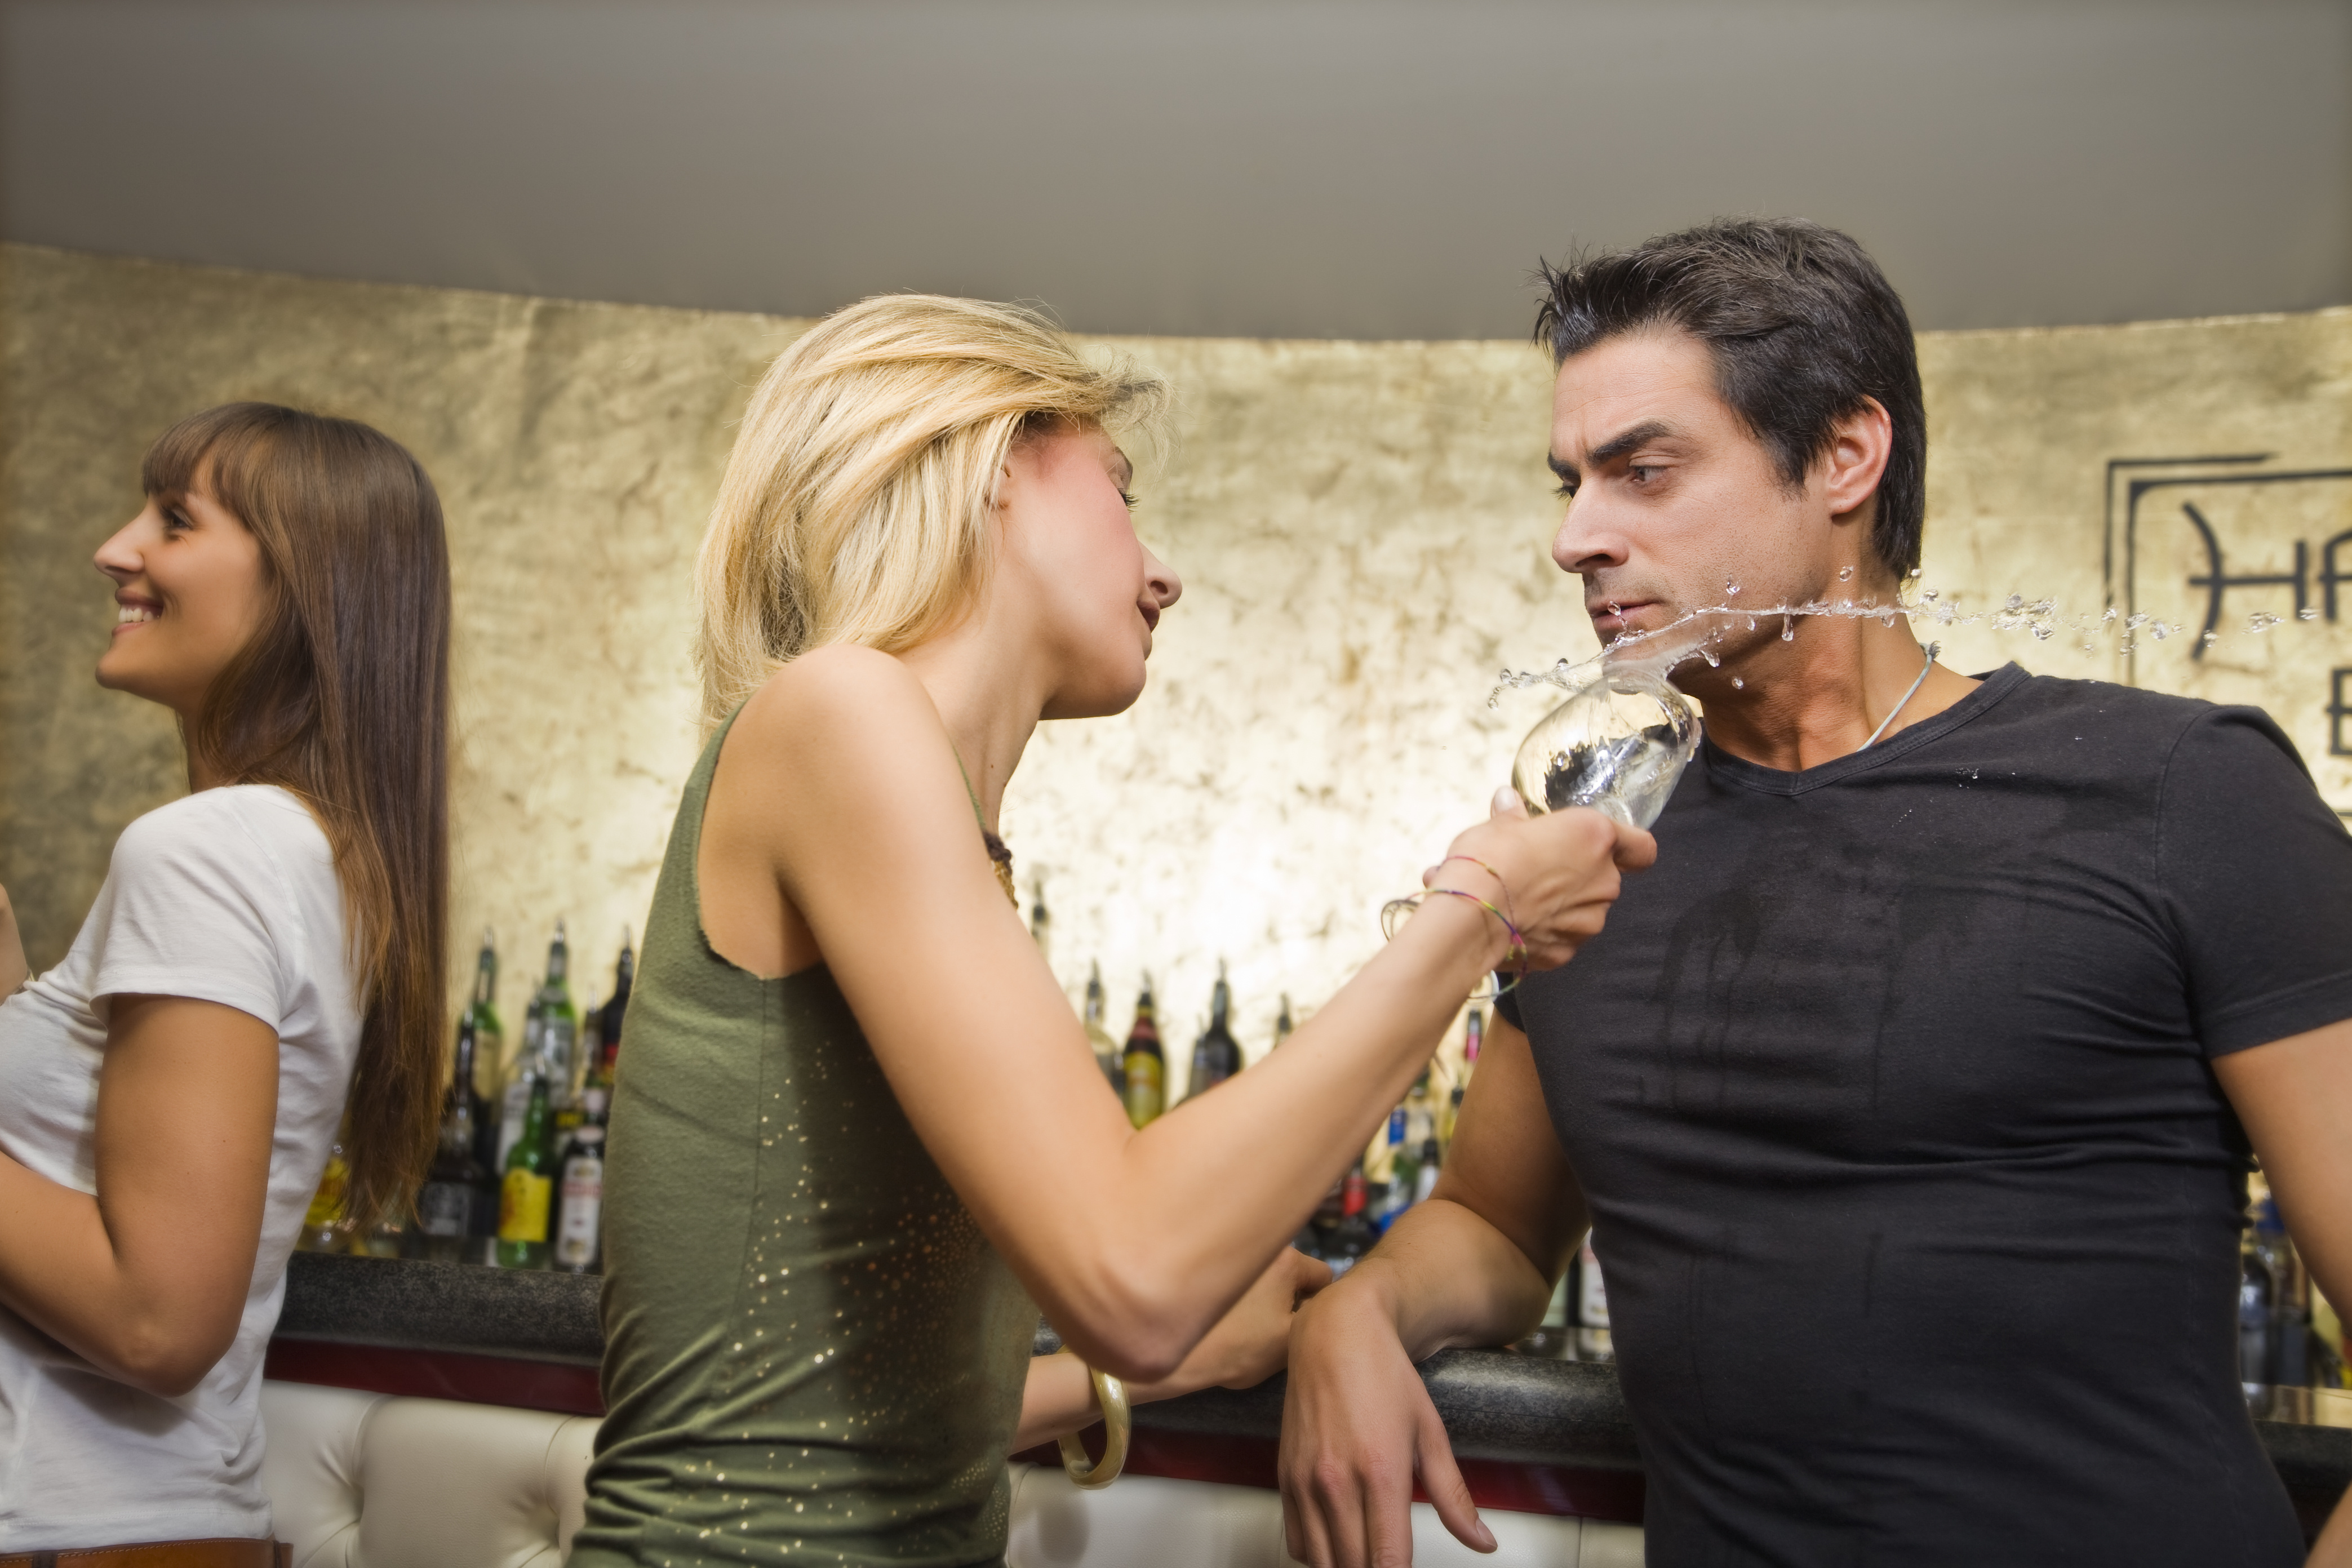 10 Dating Red Flags For Women You Need To Avoid